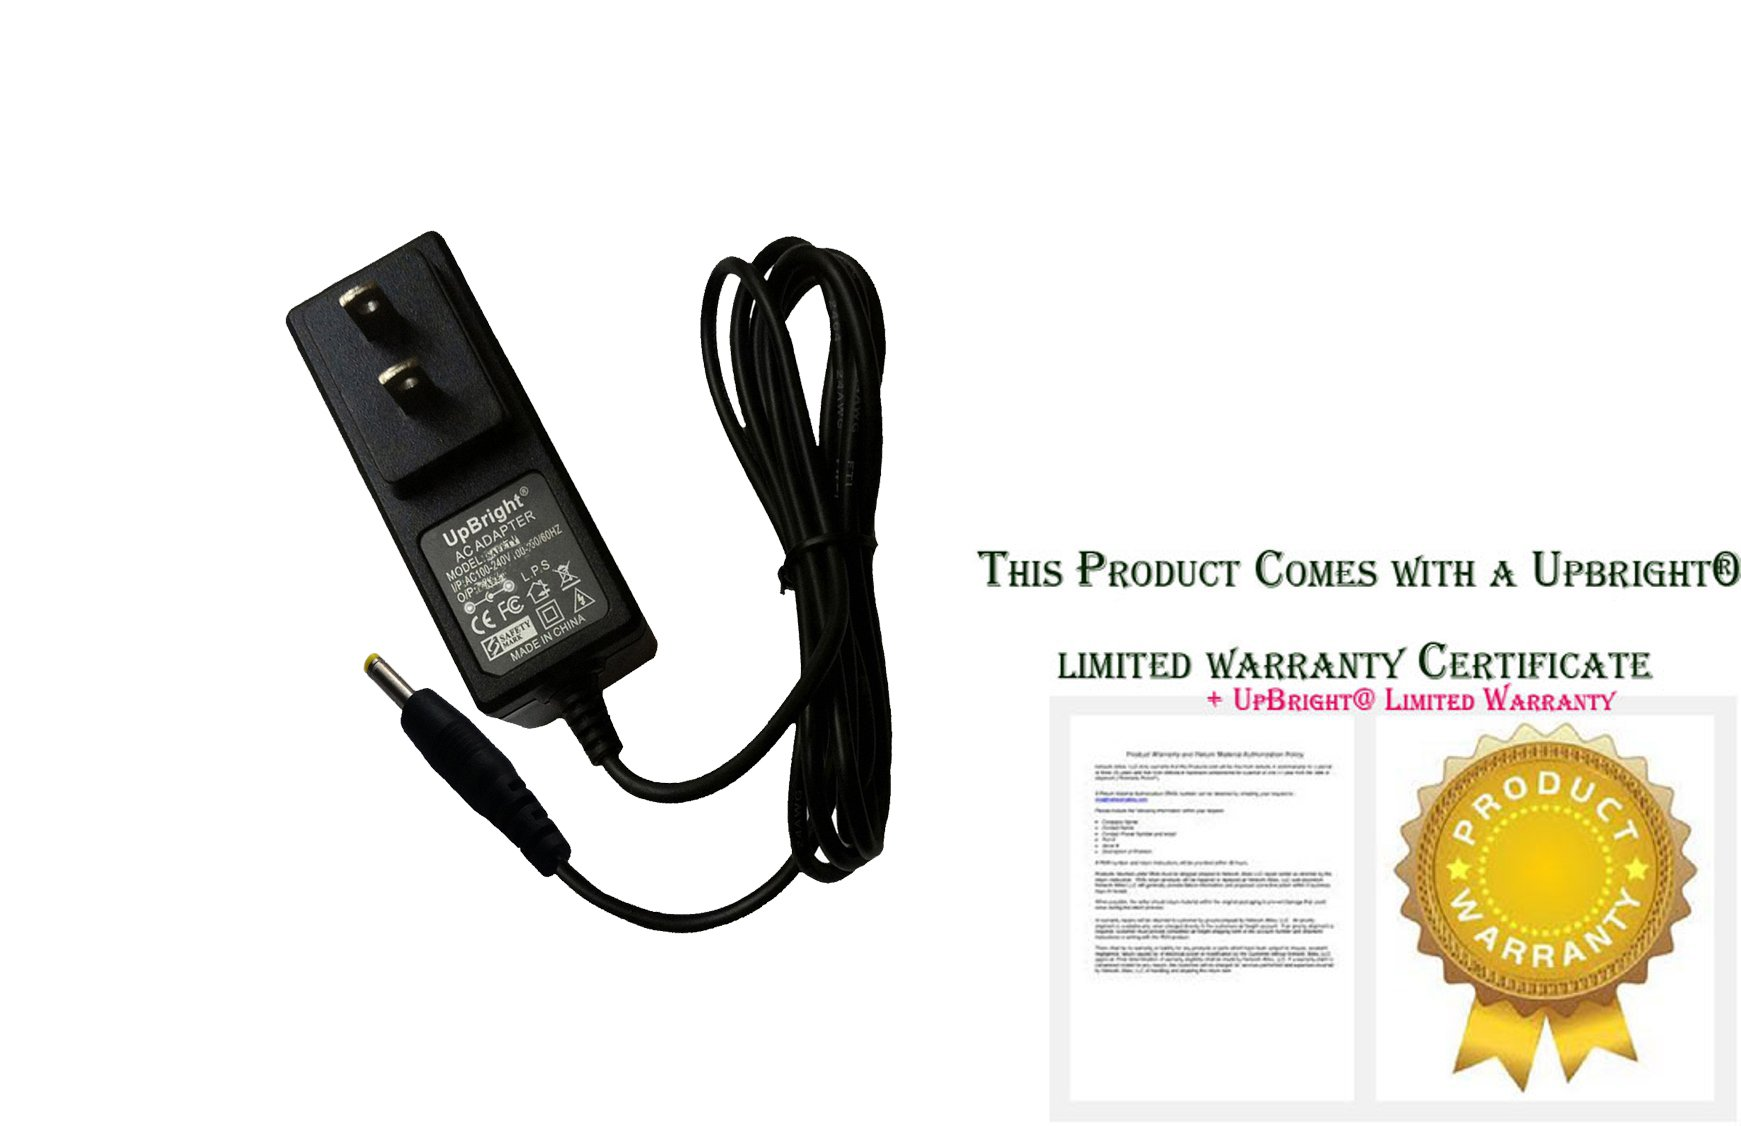 UpBright NEW Global AC / DC Adapter For jk050200-so4BSA Windows Connect 10.1 Tablet PC 5V 2A Power Supply Cord Cable PS Wall Home Battery Charger PSU